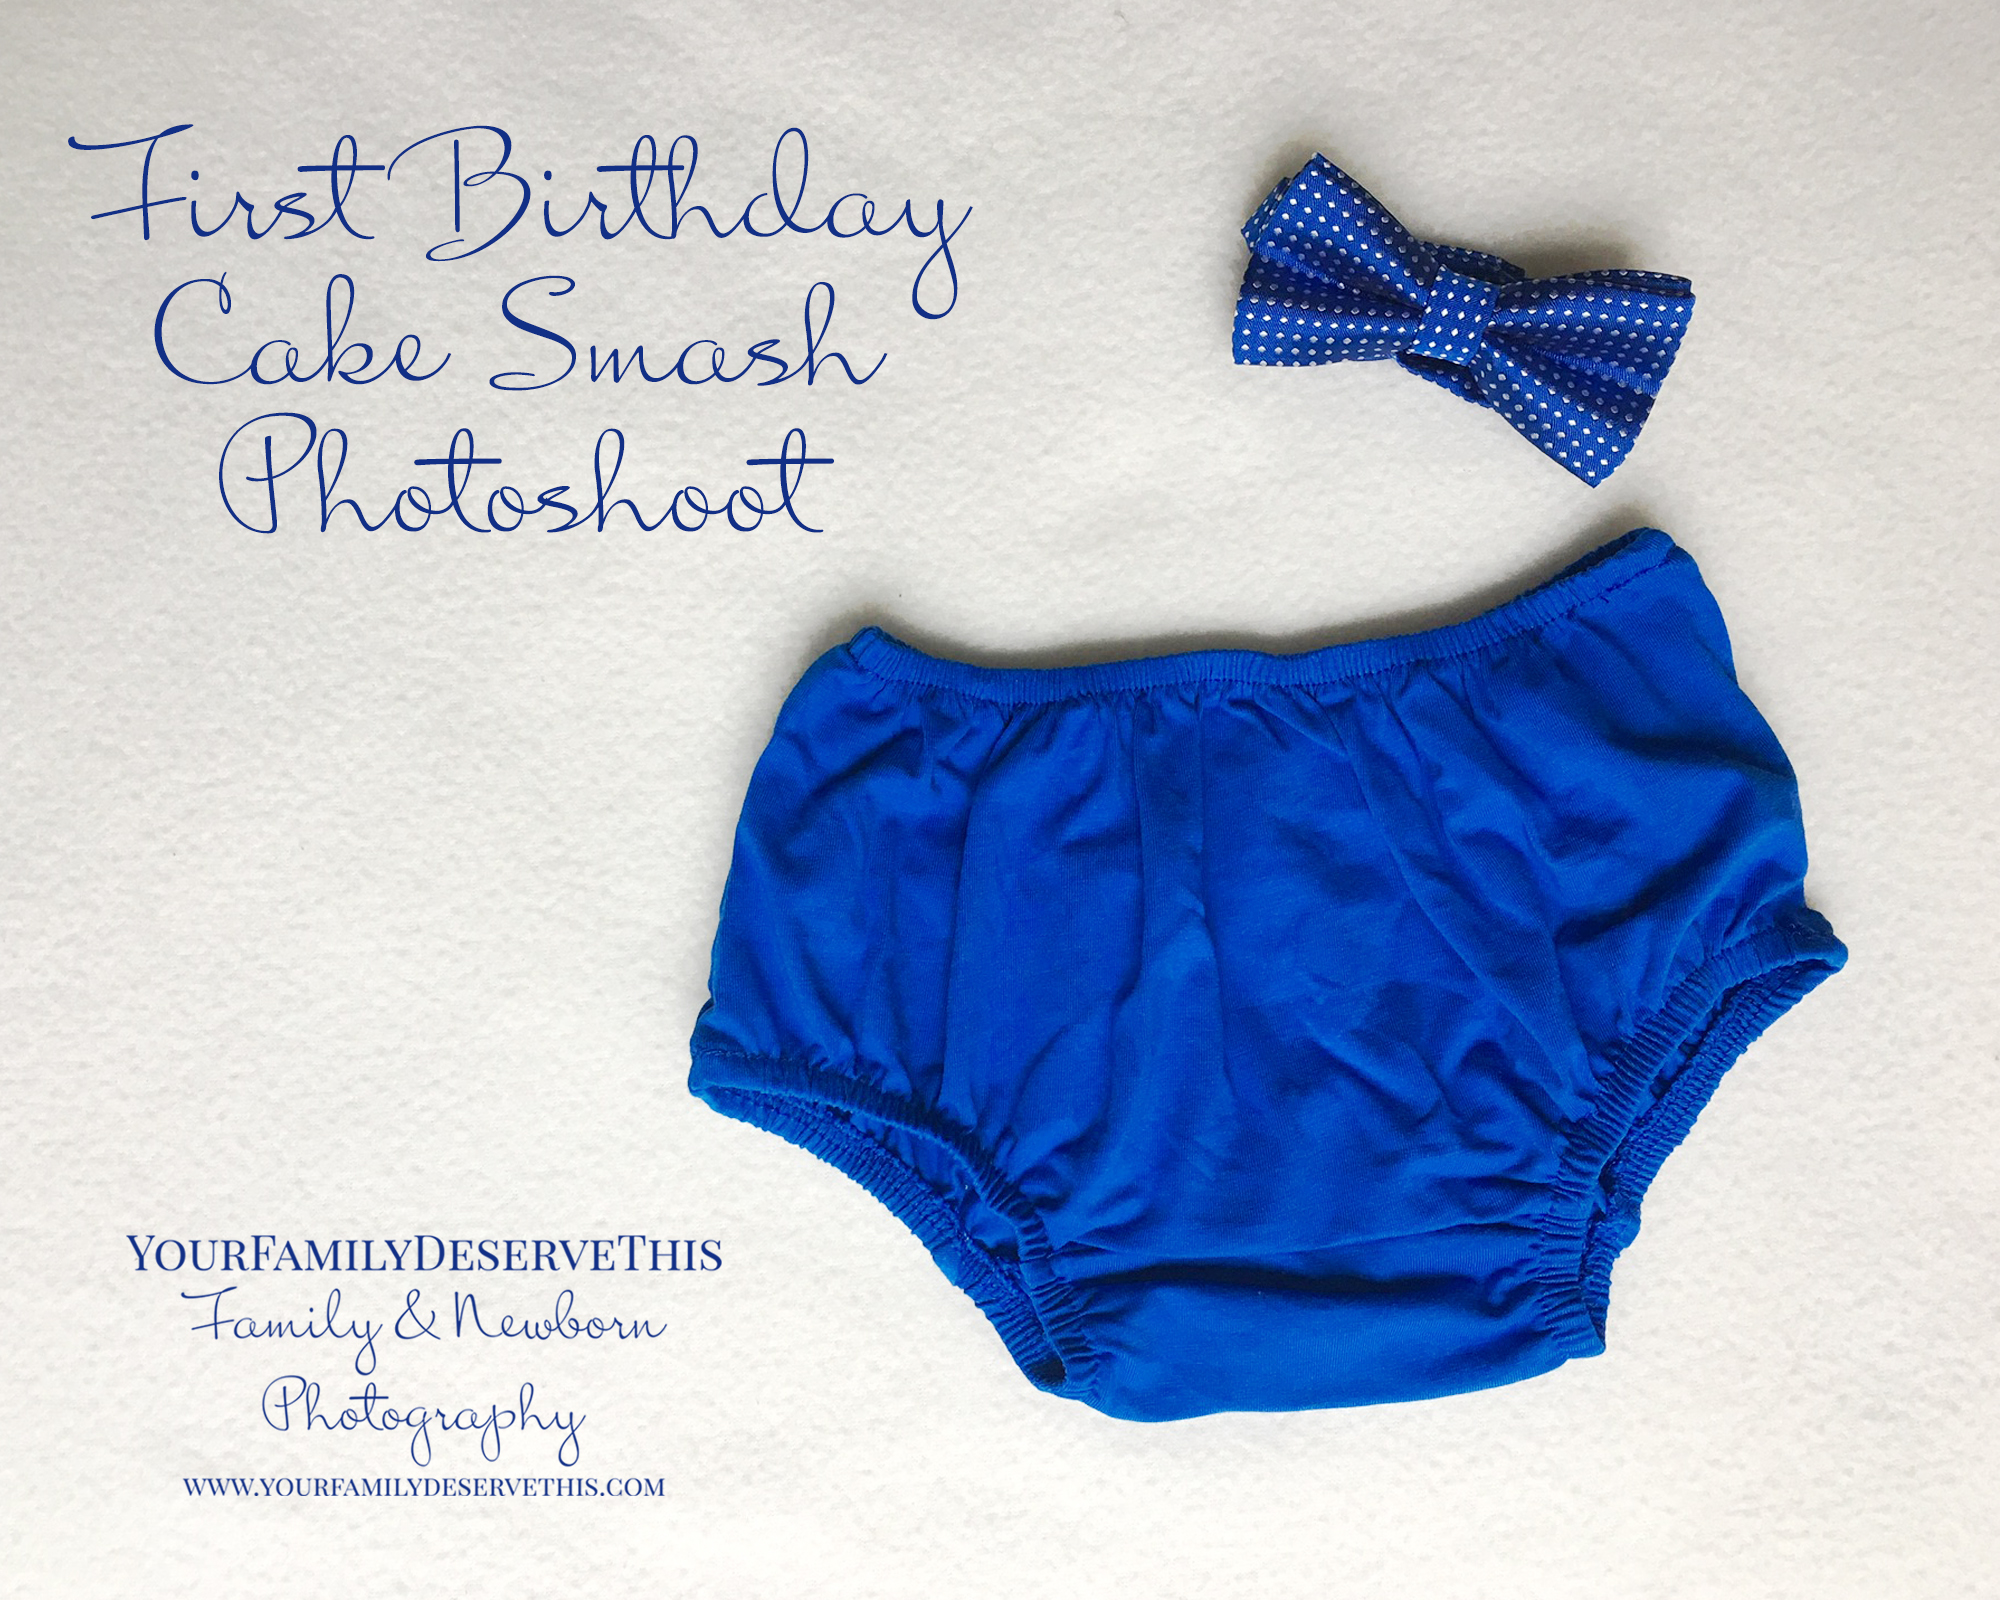 cake smash photo shoot boys blue nappy pants and bow tie copy.jpg